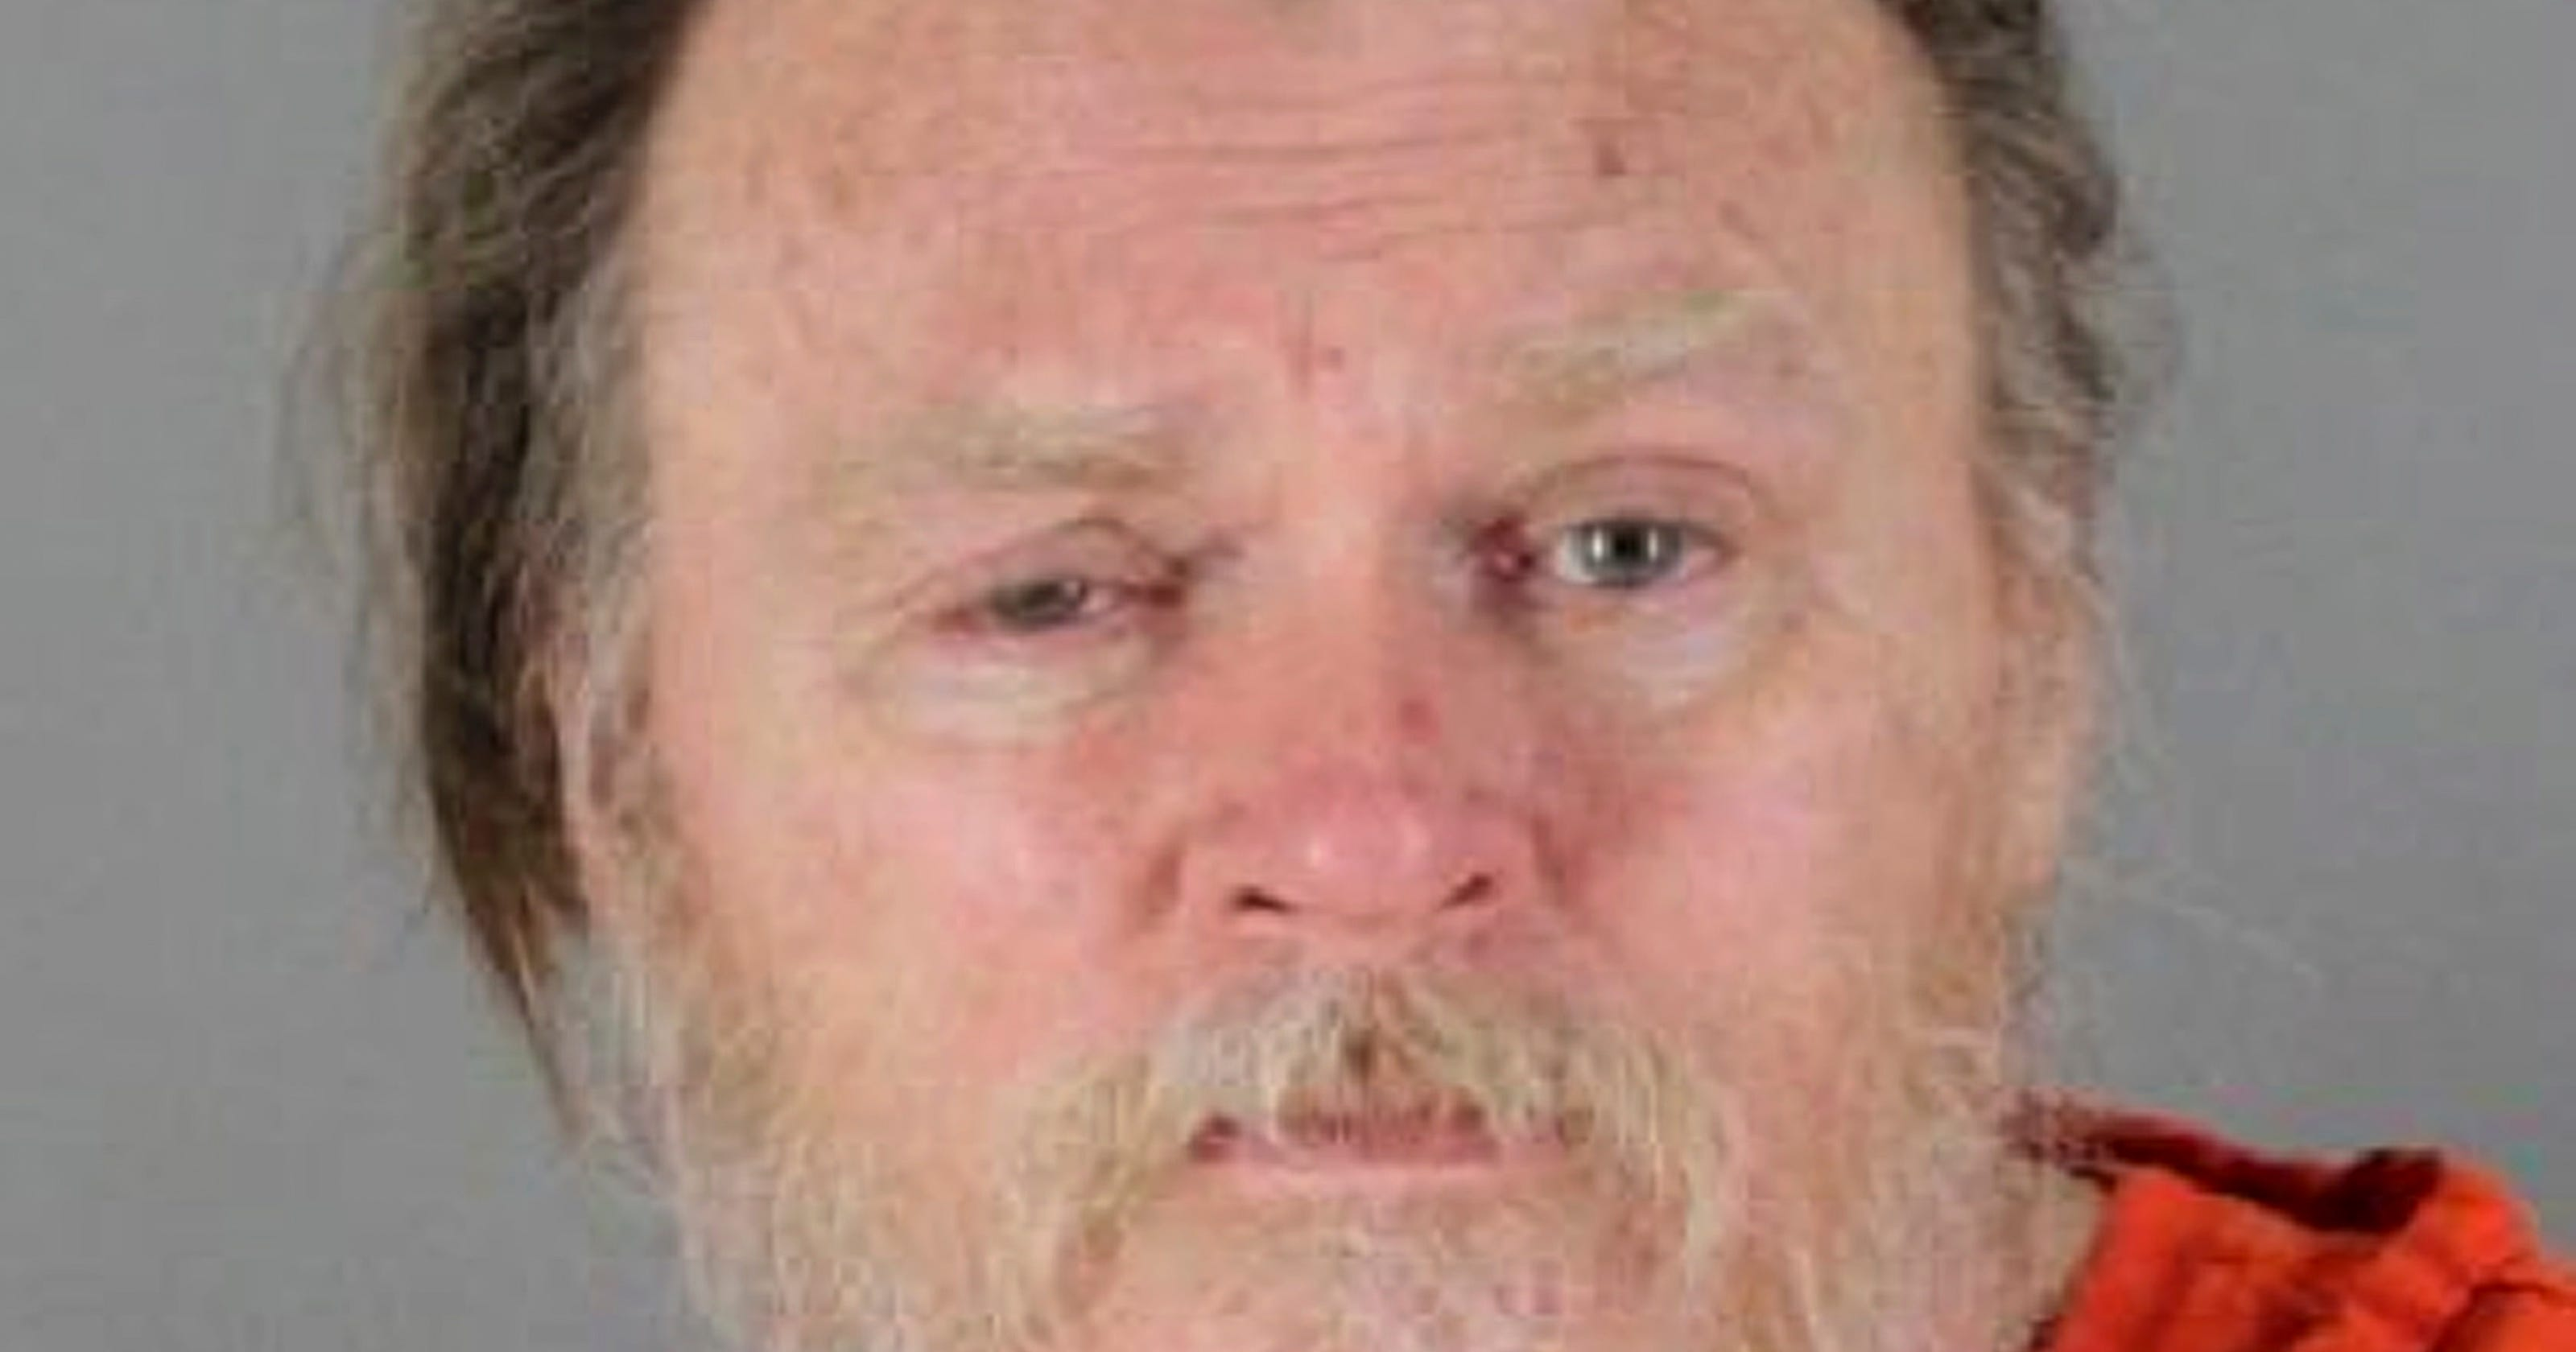 From 2015: More about man whose DNA ties him to 1976 Reno murder